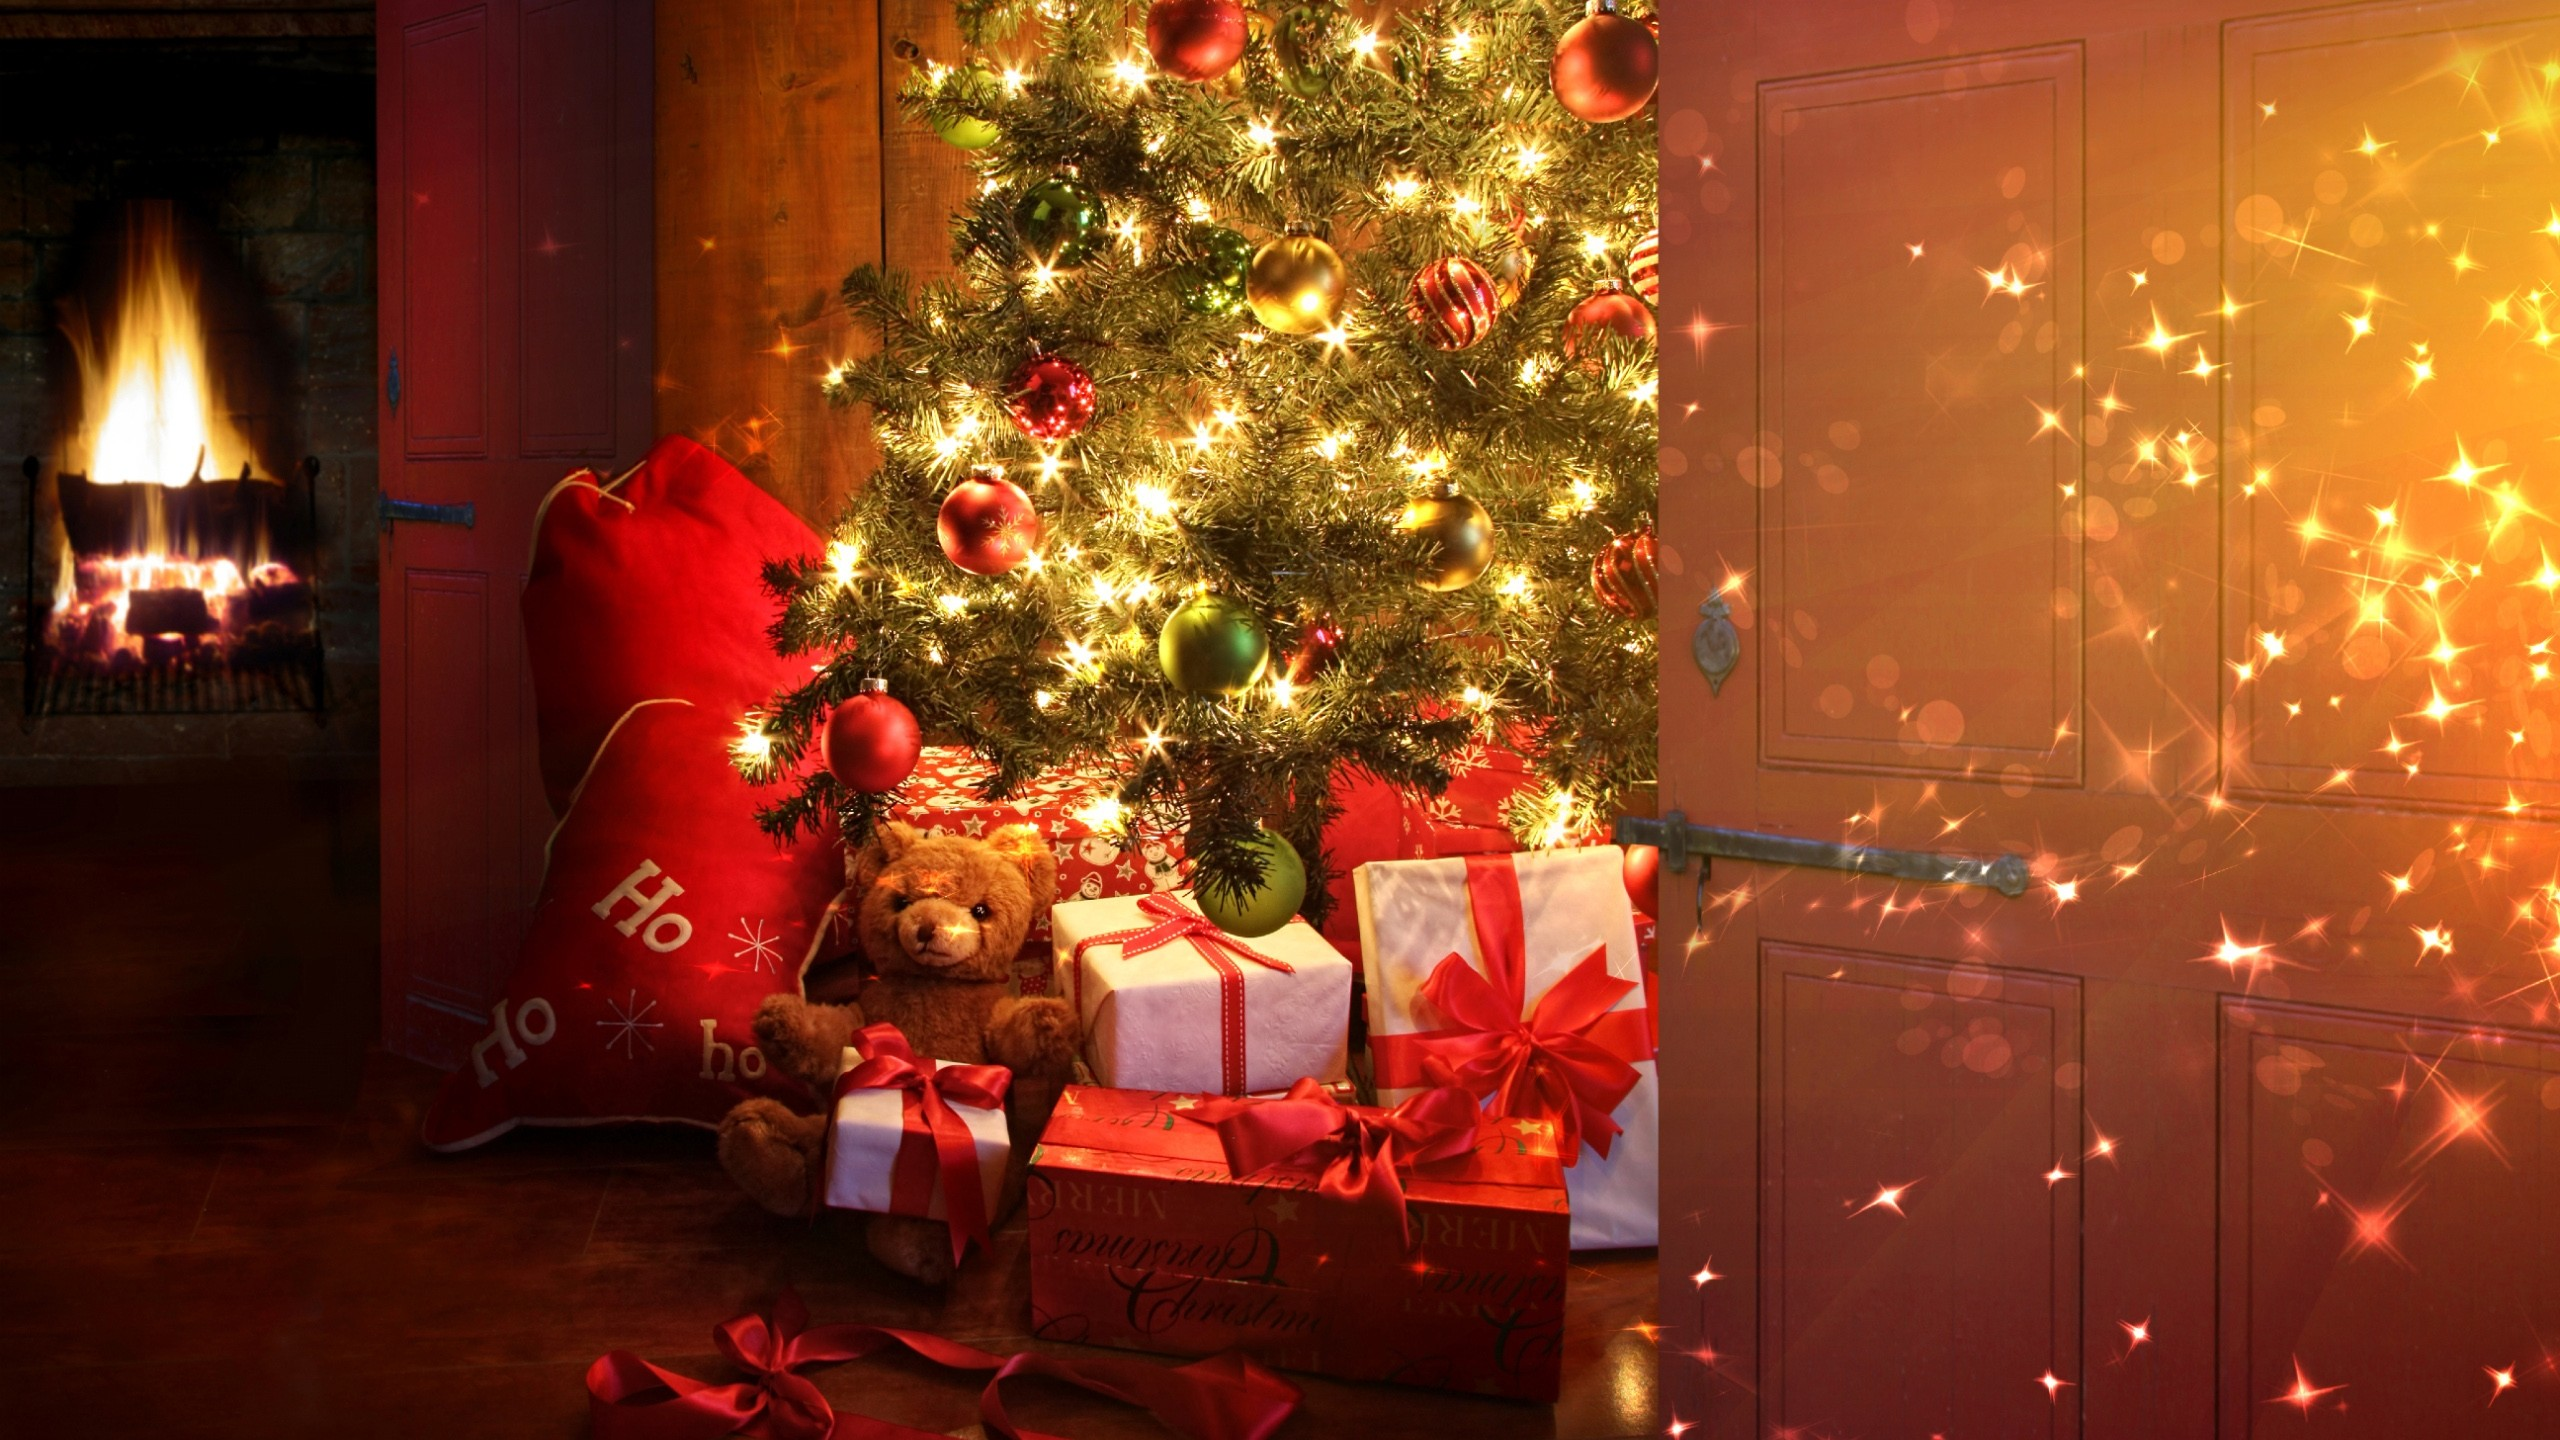 Res: 2560x1440, Image: Christmas tree and presents wallpapers and stock photos. Â«